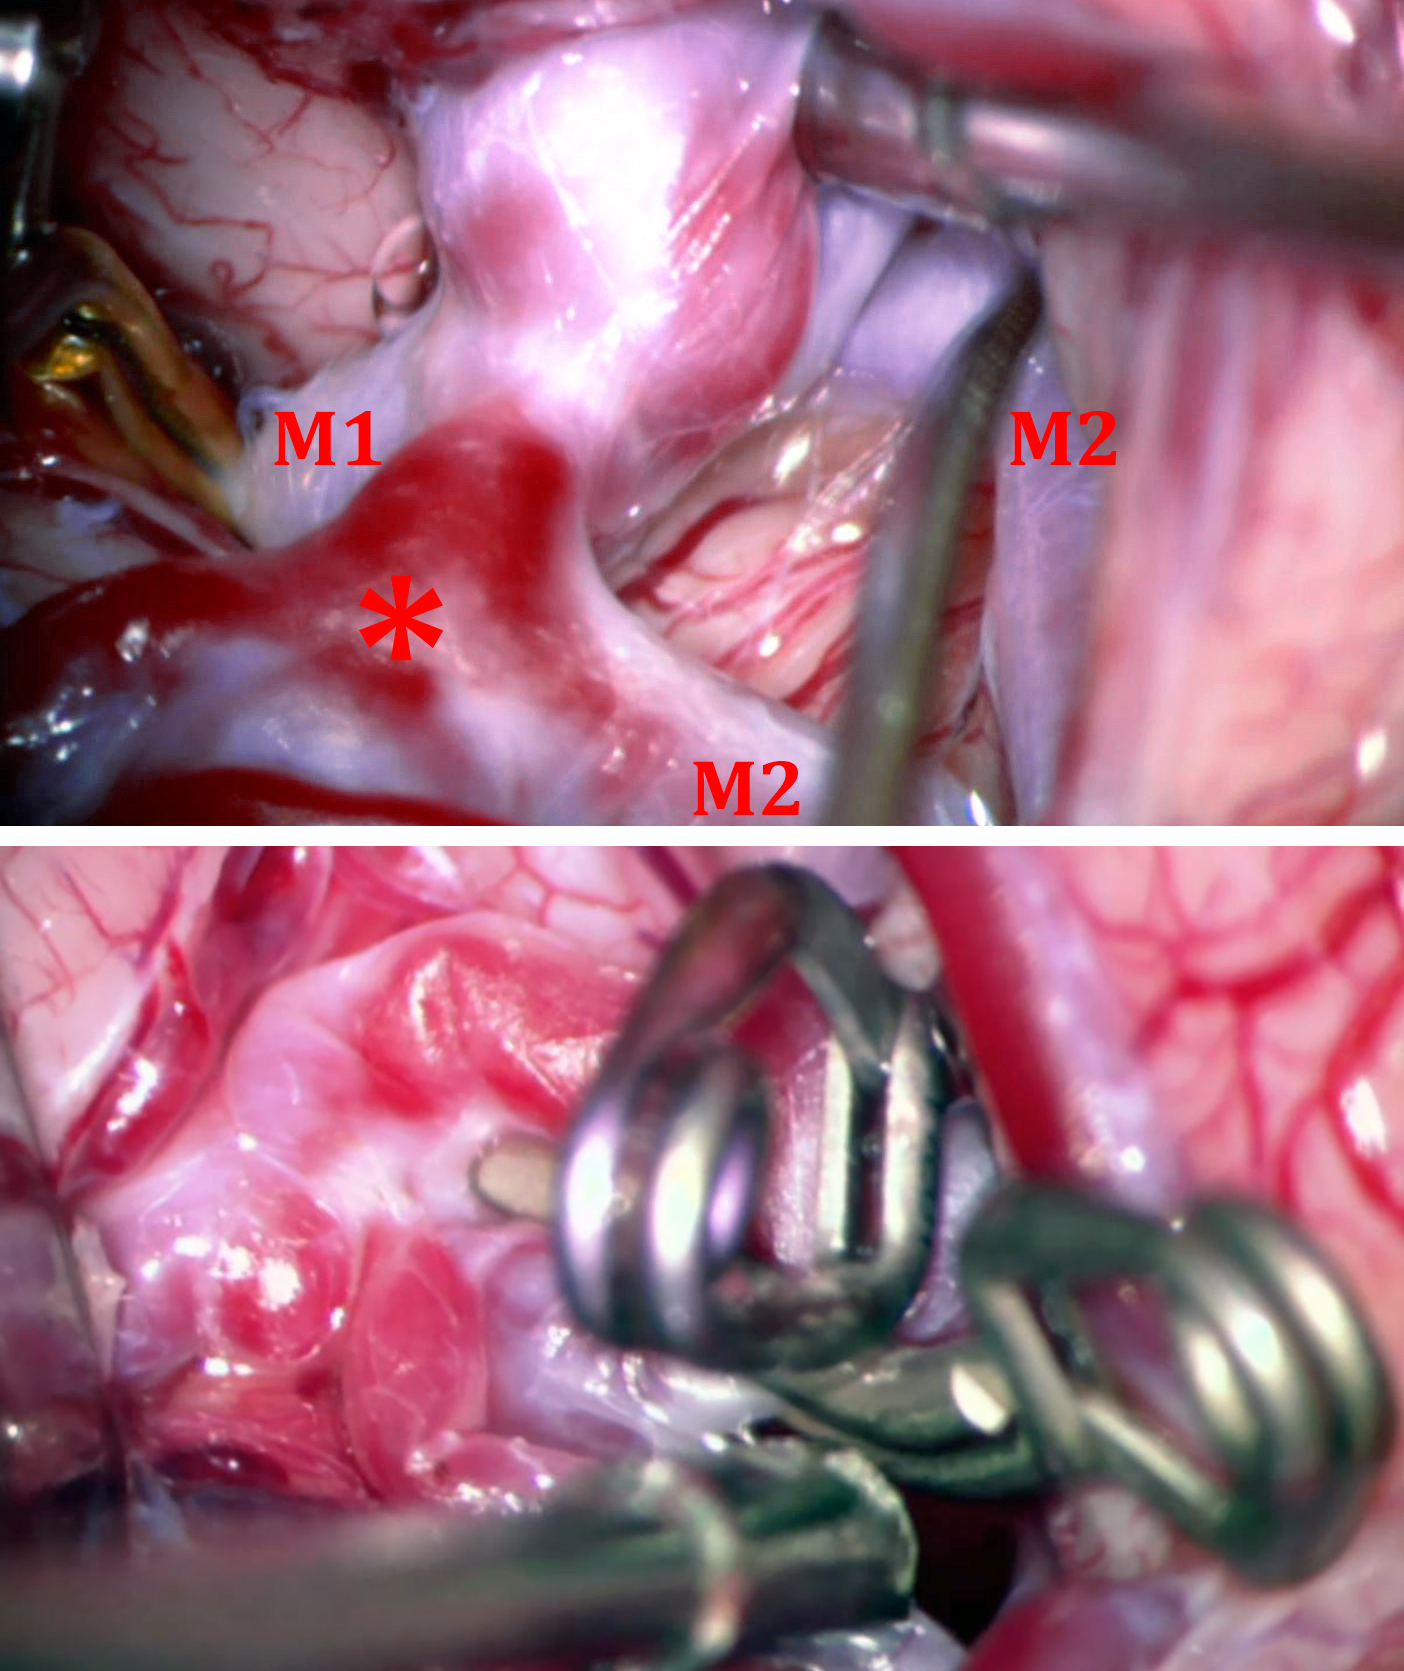 Figure 14: Note another vascular configuration at the right MCA bifurcation. The temporal M2 is covered by the sac. The early division of the frontal M2 (*) harbors a second aneurysm. This early M2 bifurcation can be mistaken for the M1 bifurcation. Two clips were used for obliteration of both aneurysms.